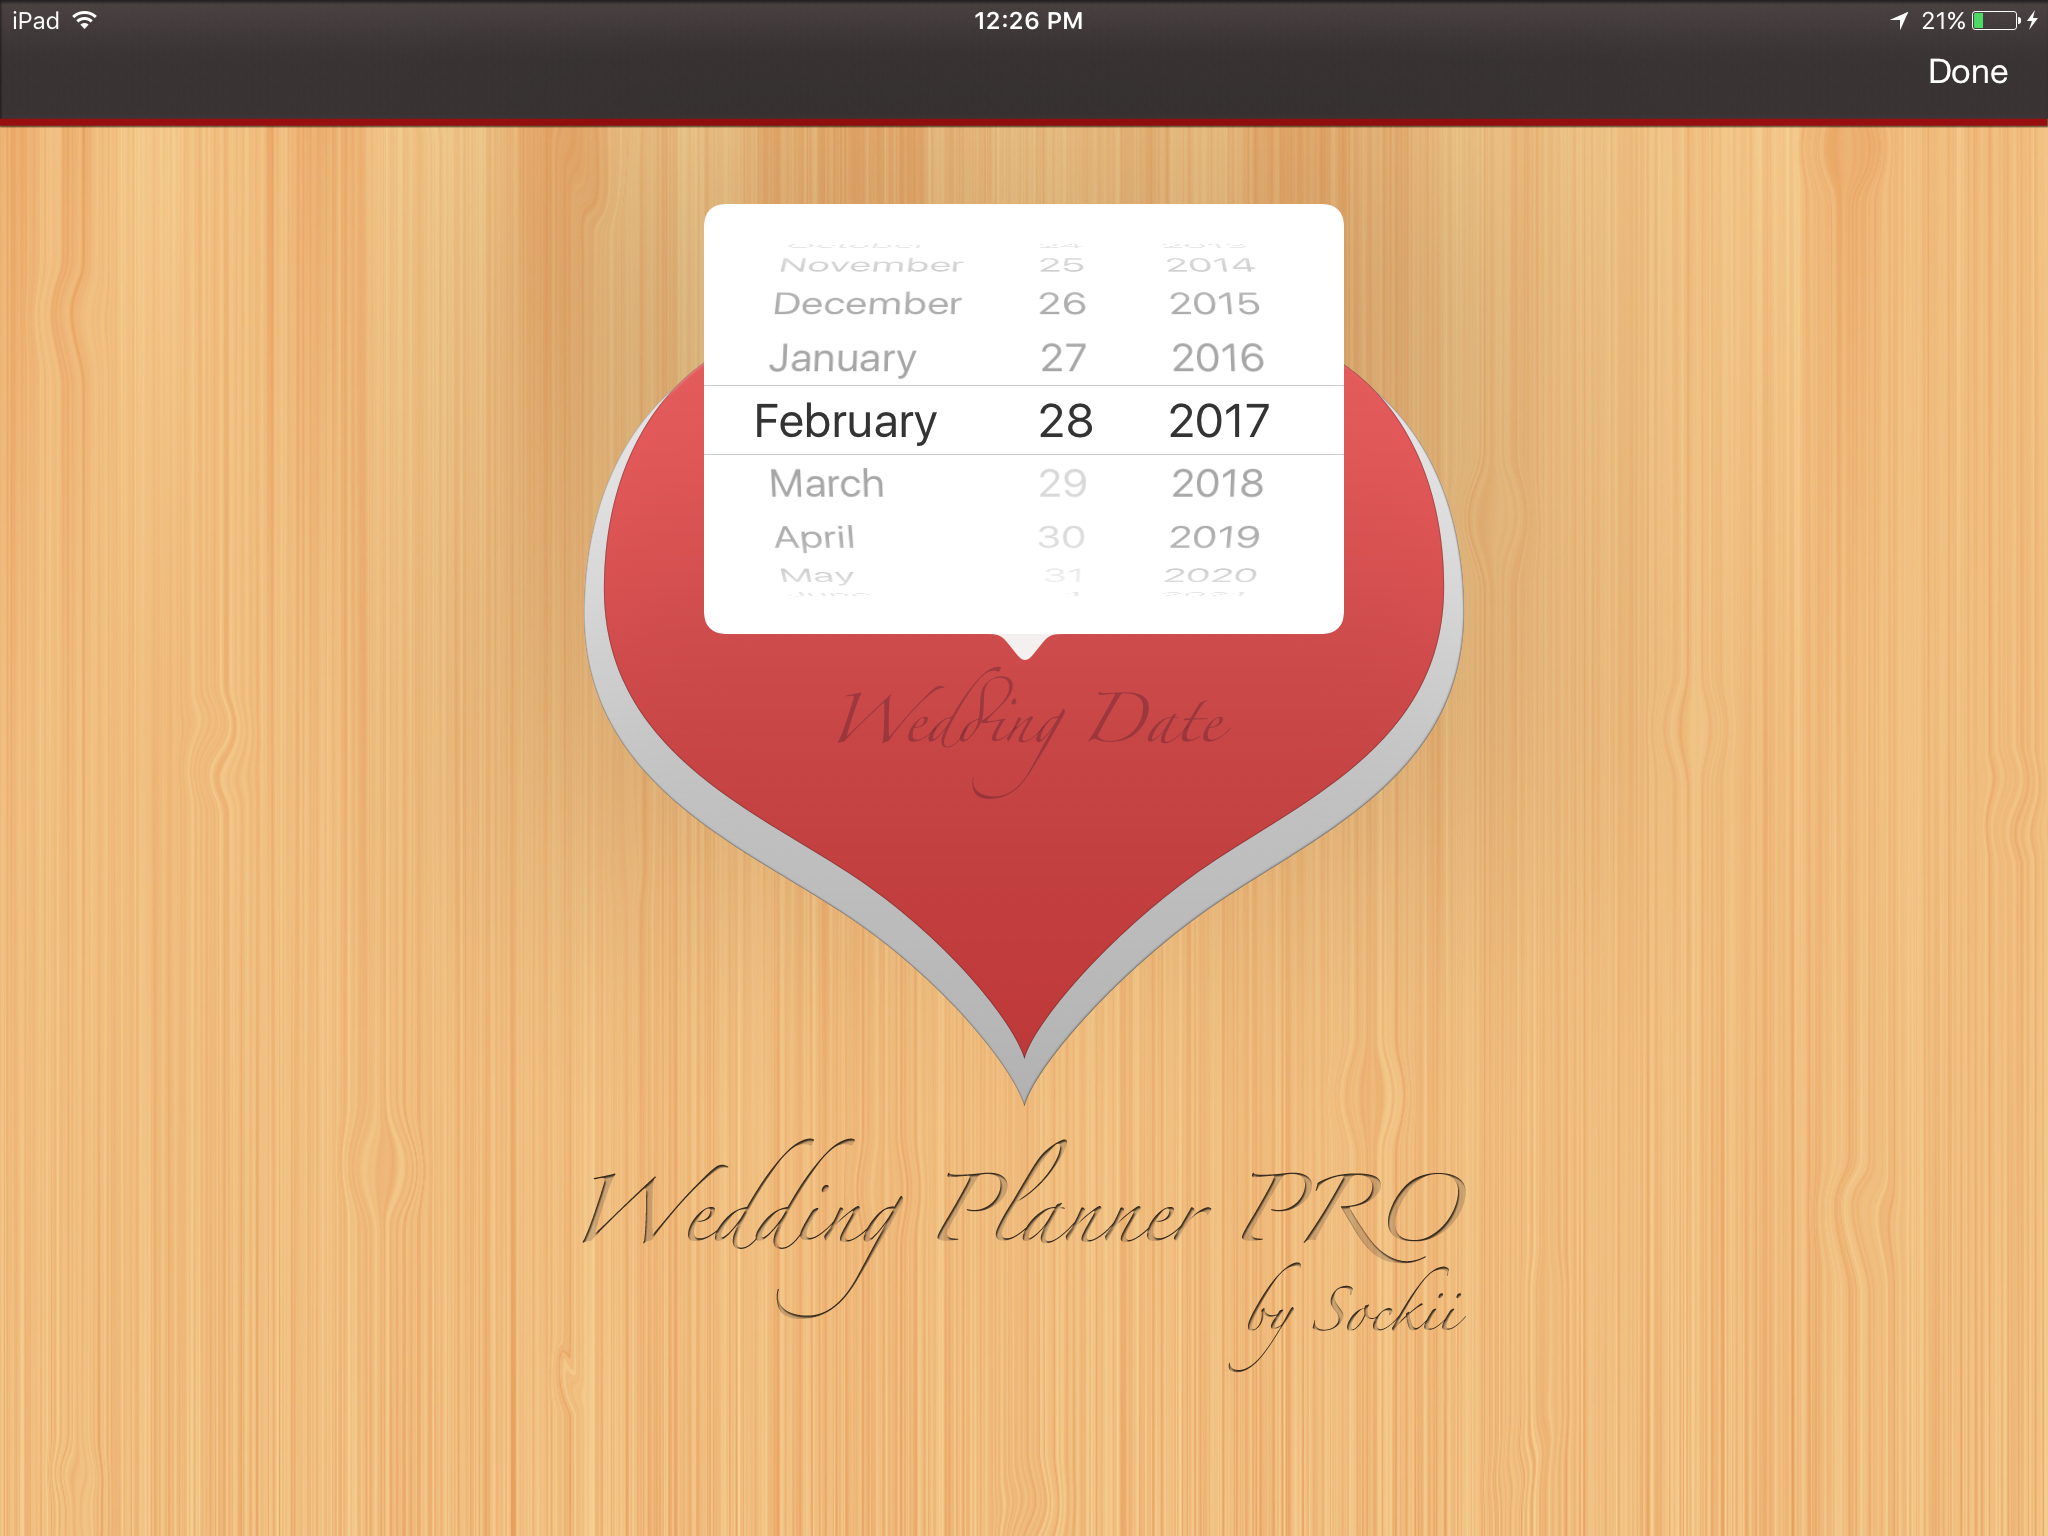 Wedding Planner PRO entering wedding date iPad